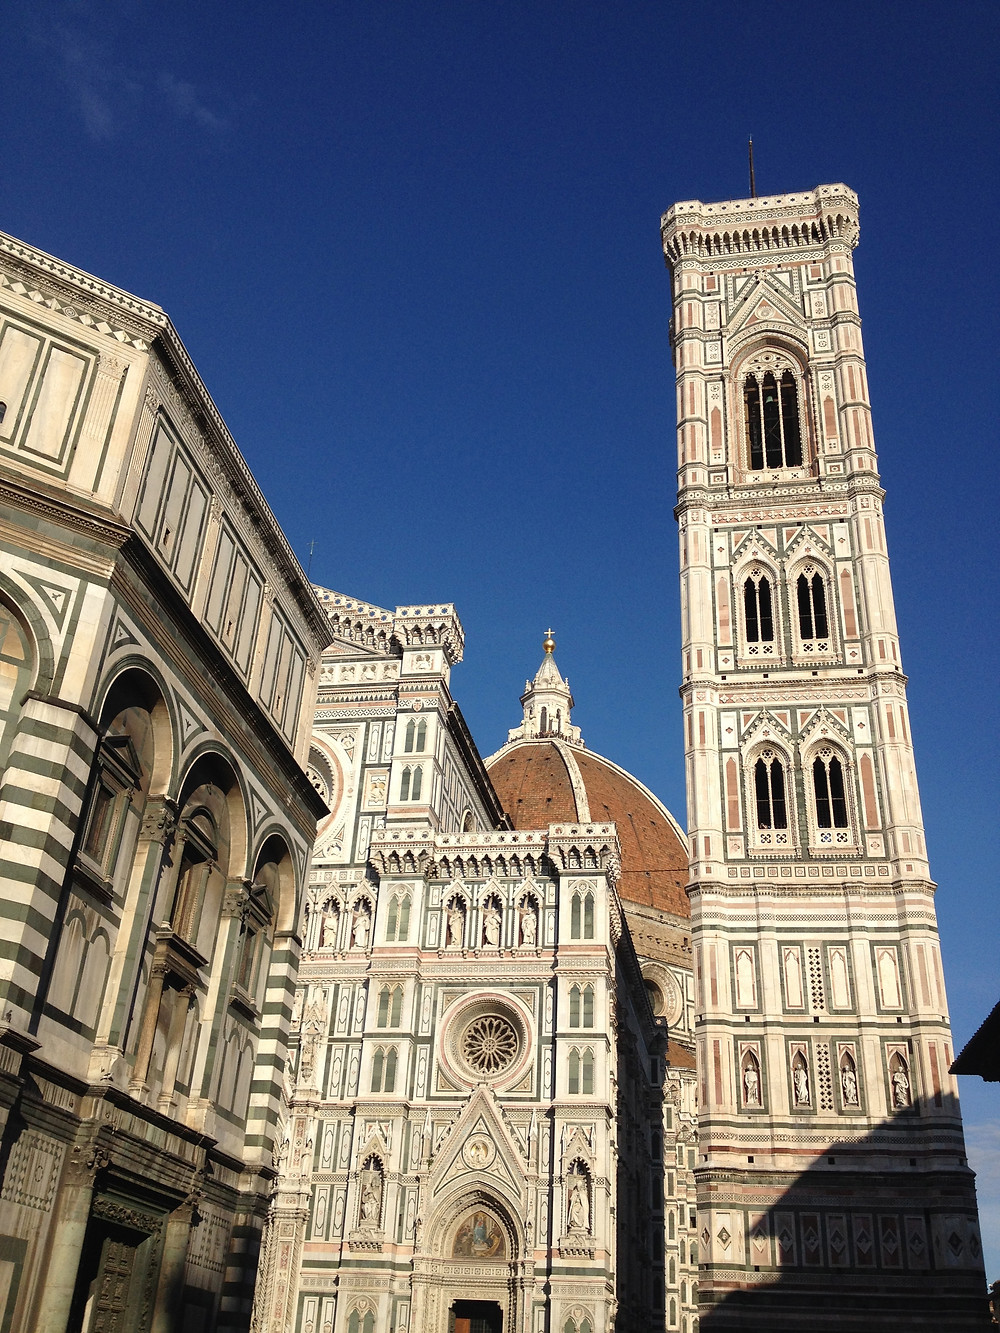 Baptistery, Cathedral and Bell Tower in Florence, Italy. Photo by Diana Dinverno